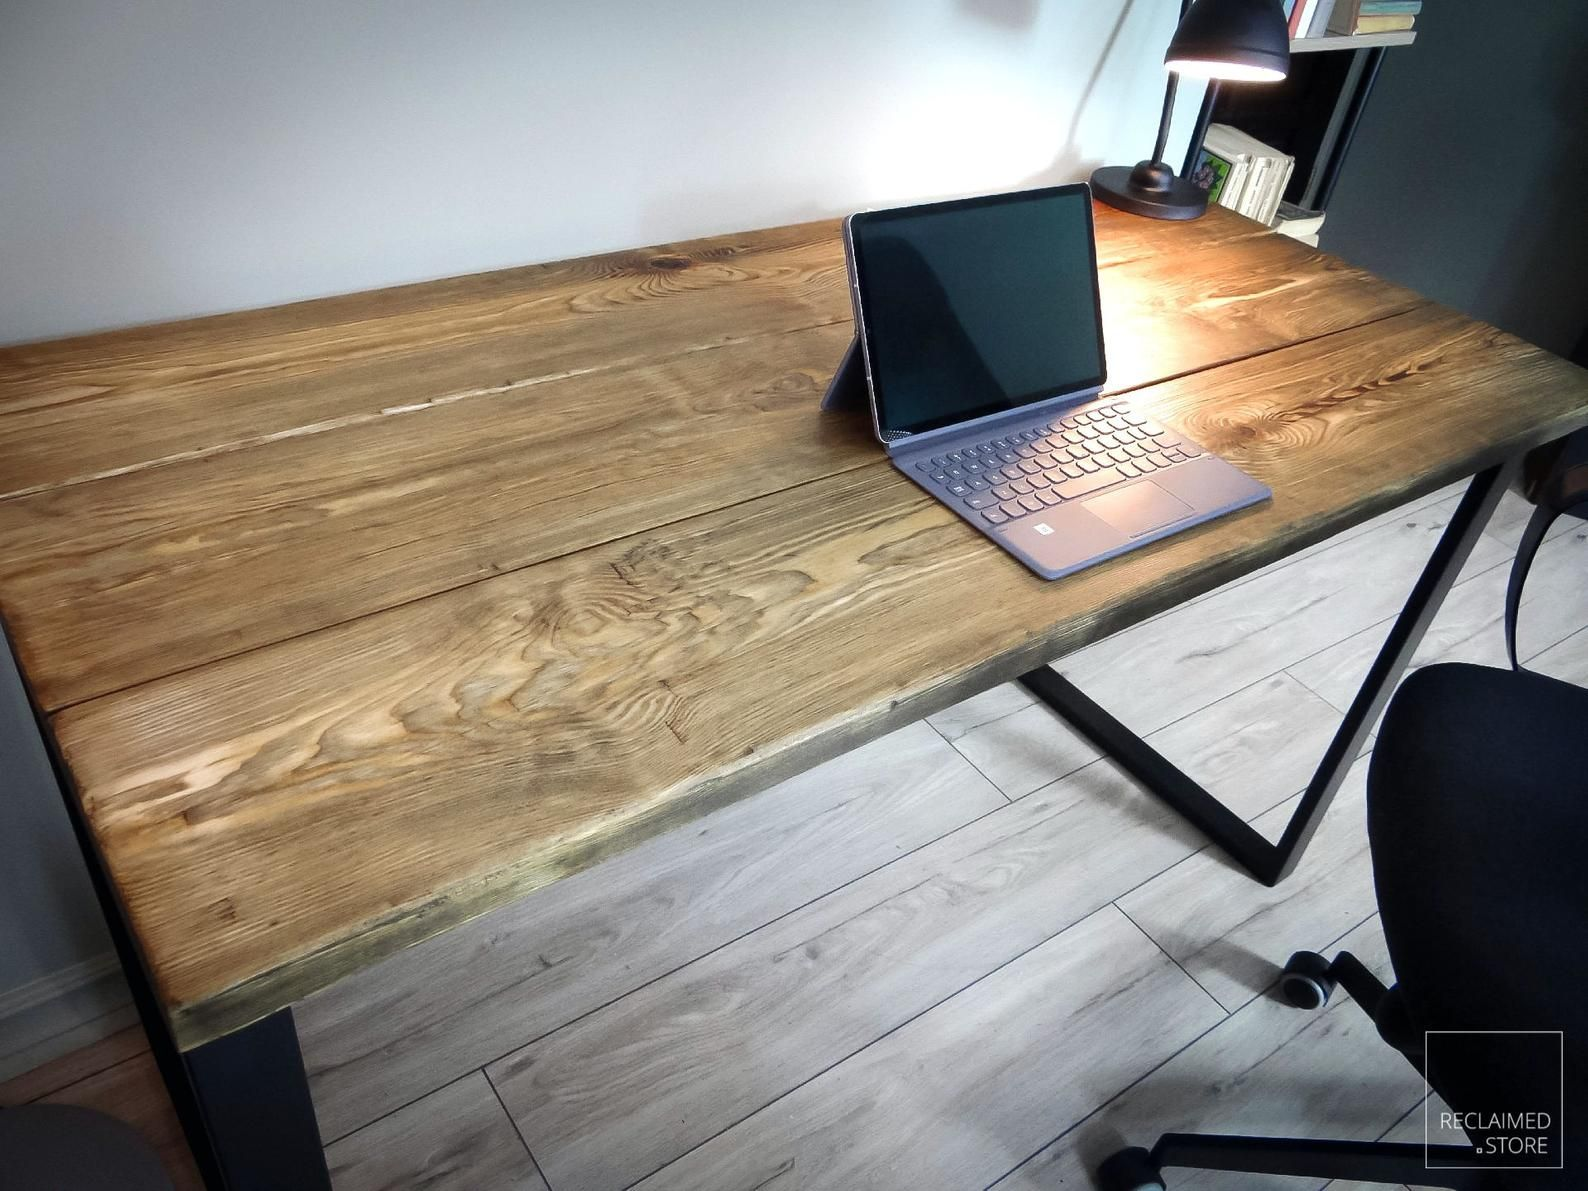 Reclaimed Wooden Desk Solid Metal Legs Reclaimed Furniture Desk Industrial Desk Wooden Office Desk Old Wood Desk In 2020 Reclaimed Wooden Desk Wooden Desk Solid Wood Office Desk